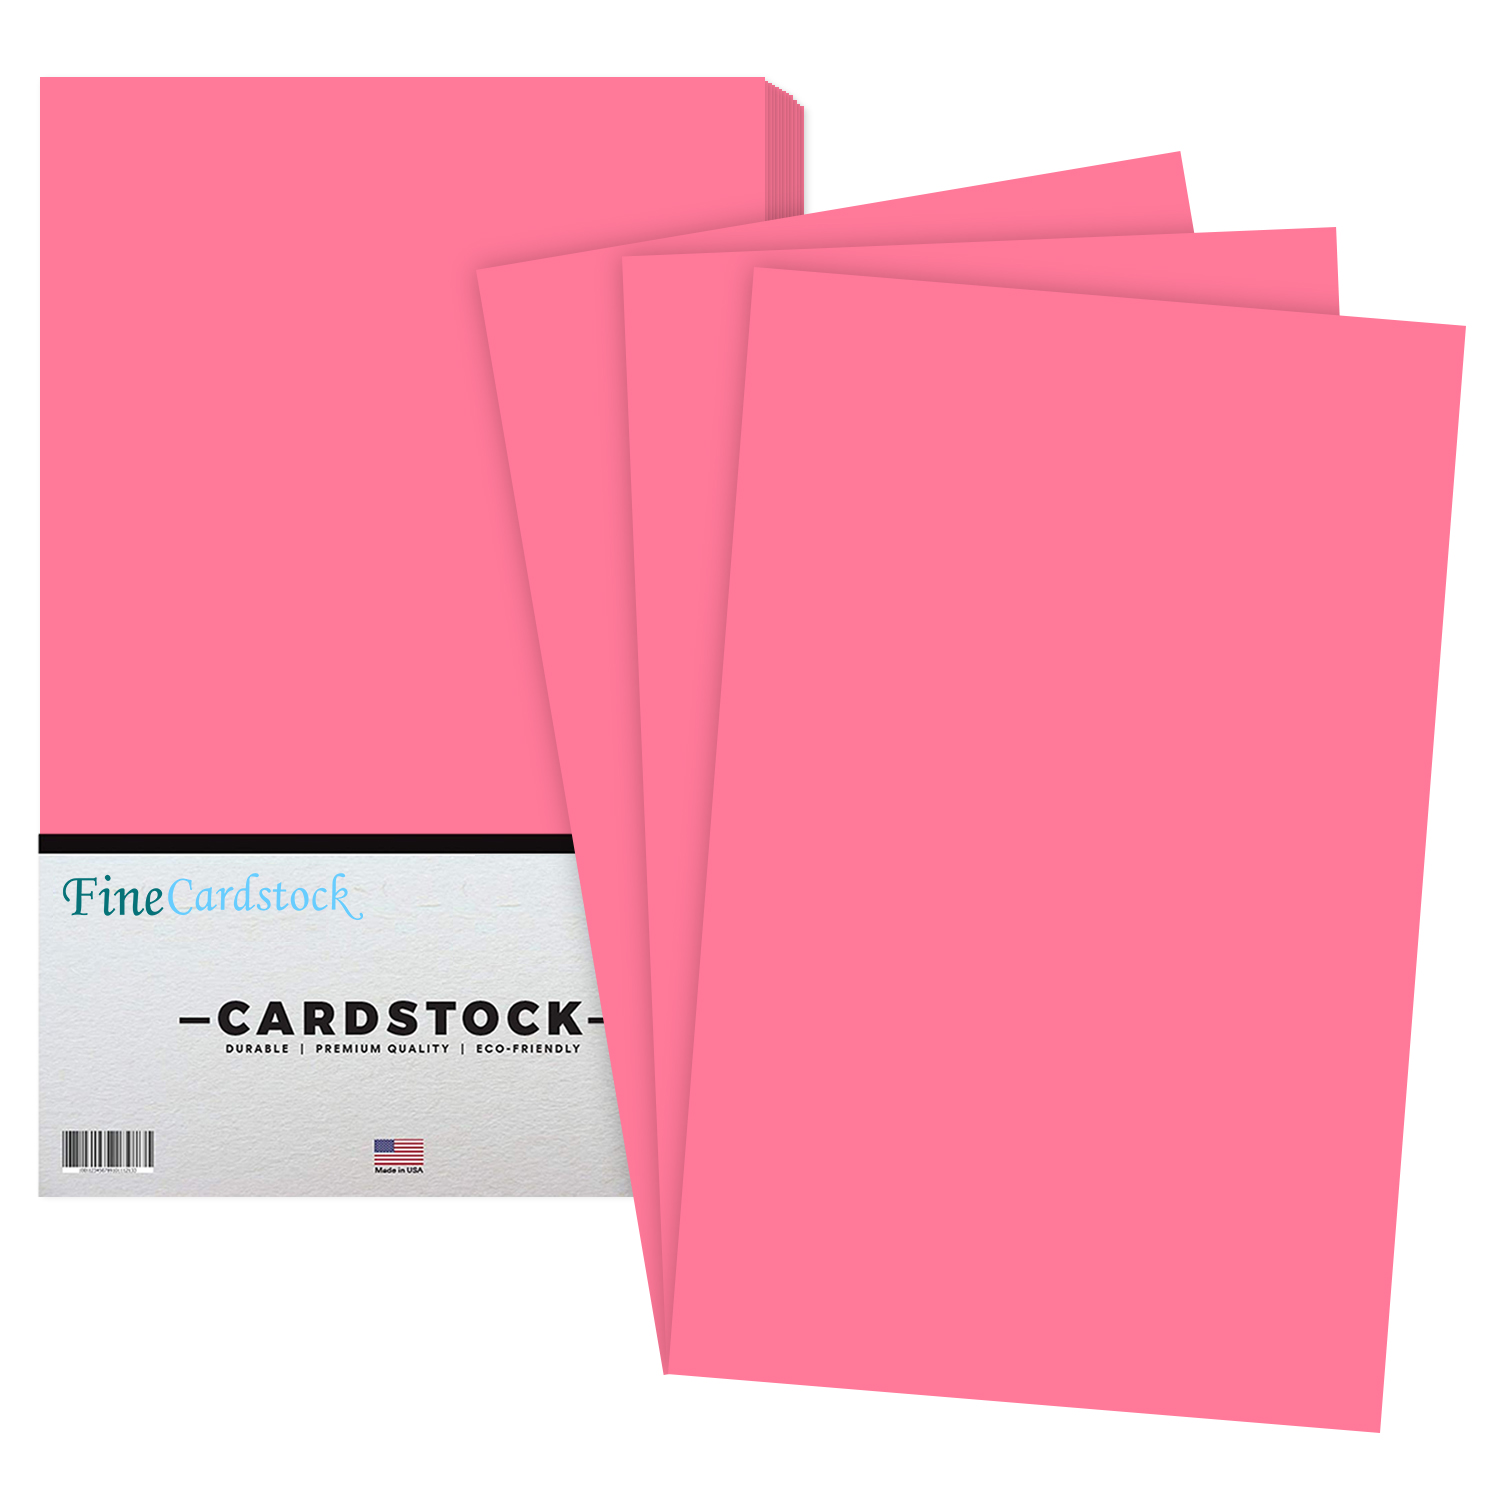 11 x 17 Color Cardstock